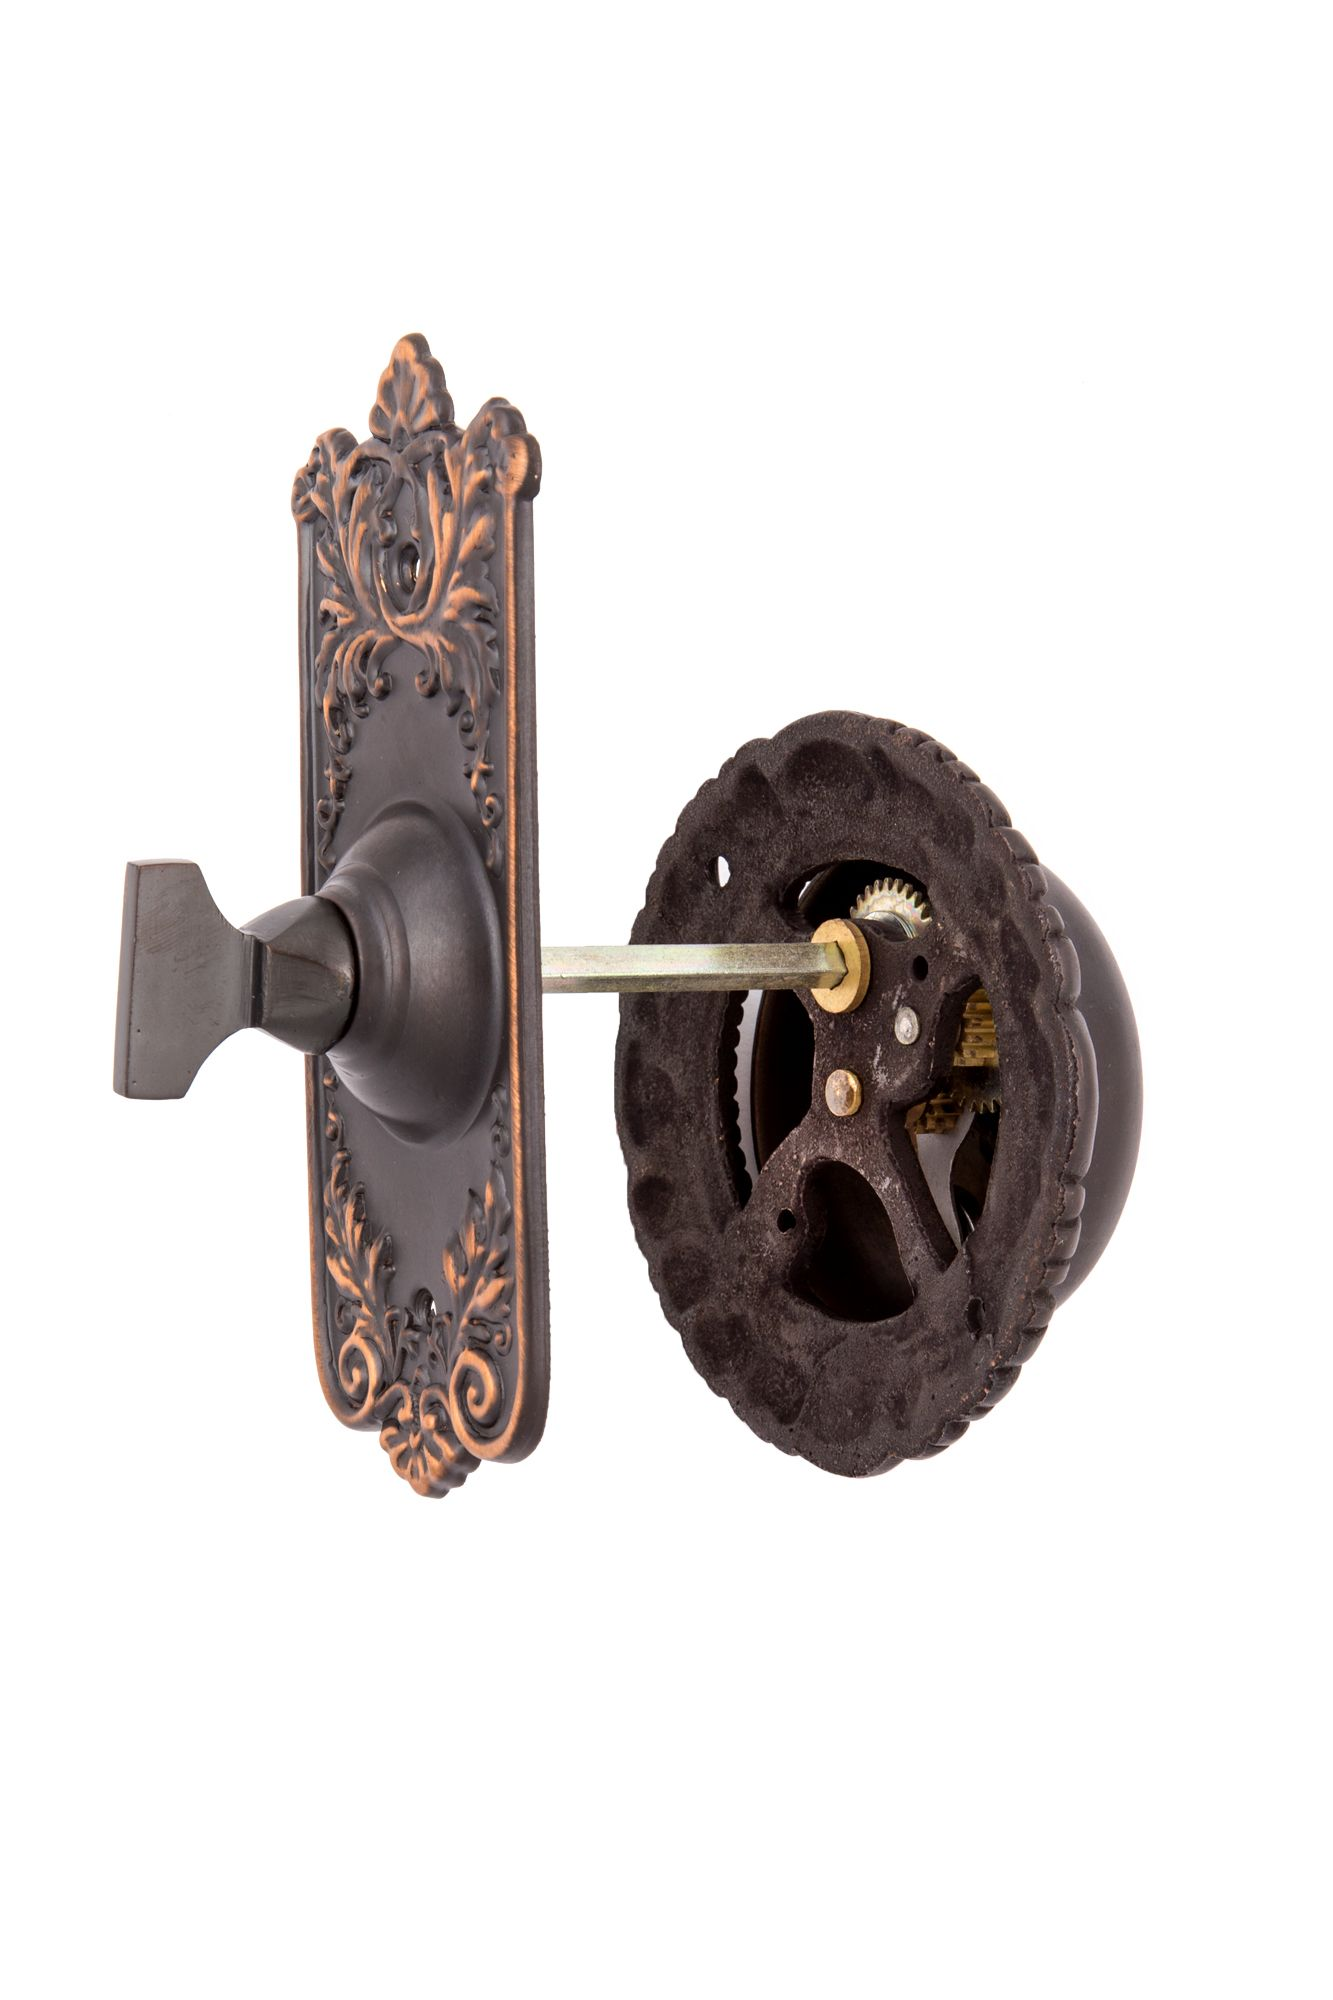 Turn Style Doorbell Set By Charleston Hardware Company Antique Antiquehardware Interiordesign Architecture Ho French Country Antique Restoration Doorbell